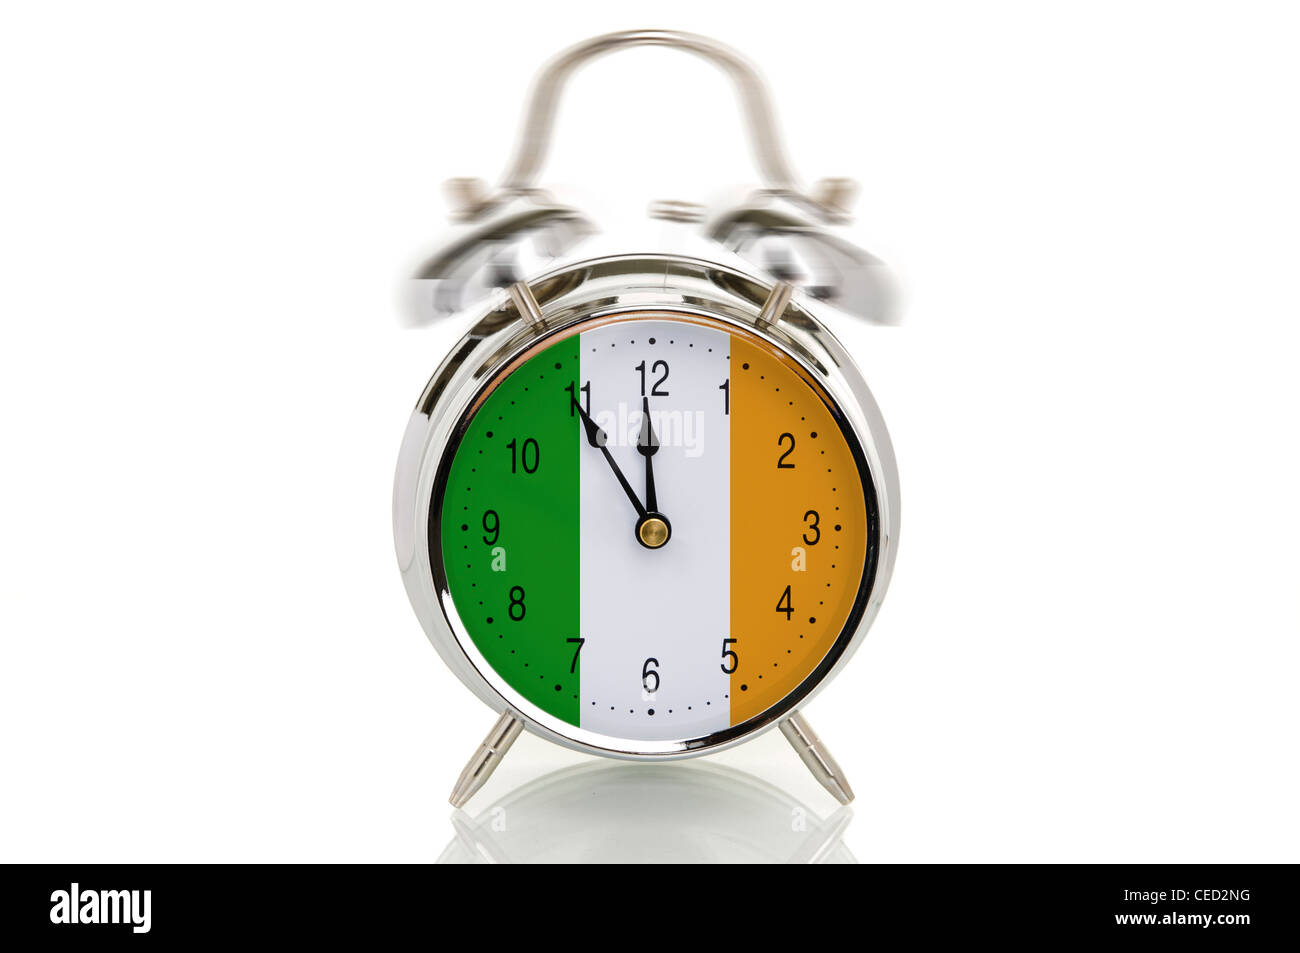 Ringing alarm clock with the Irish national flag, time set to five minutes to twelve, symbolic image for the crisis - Stock Image